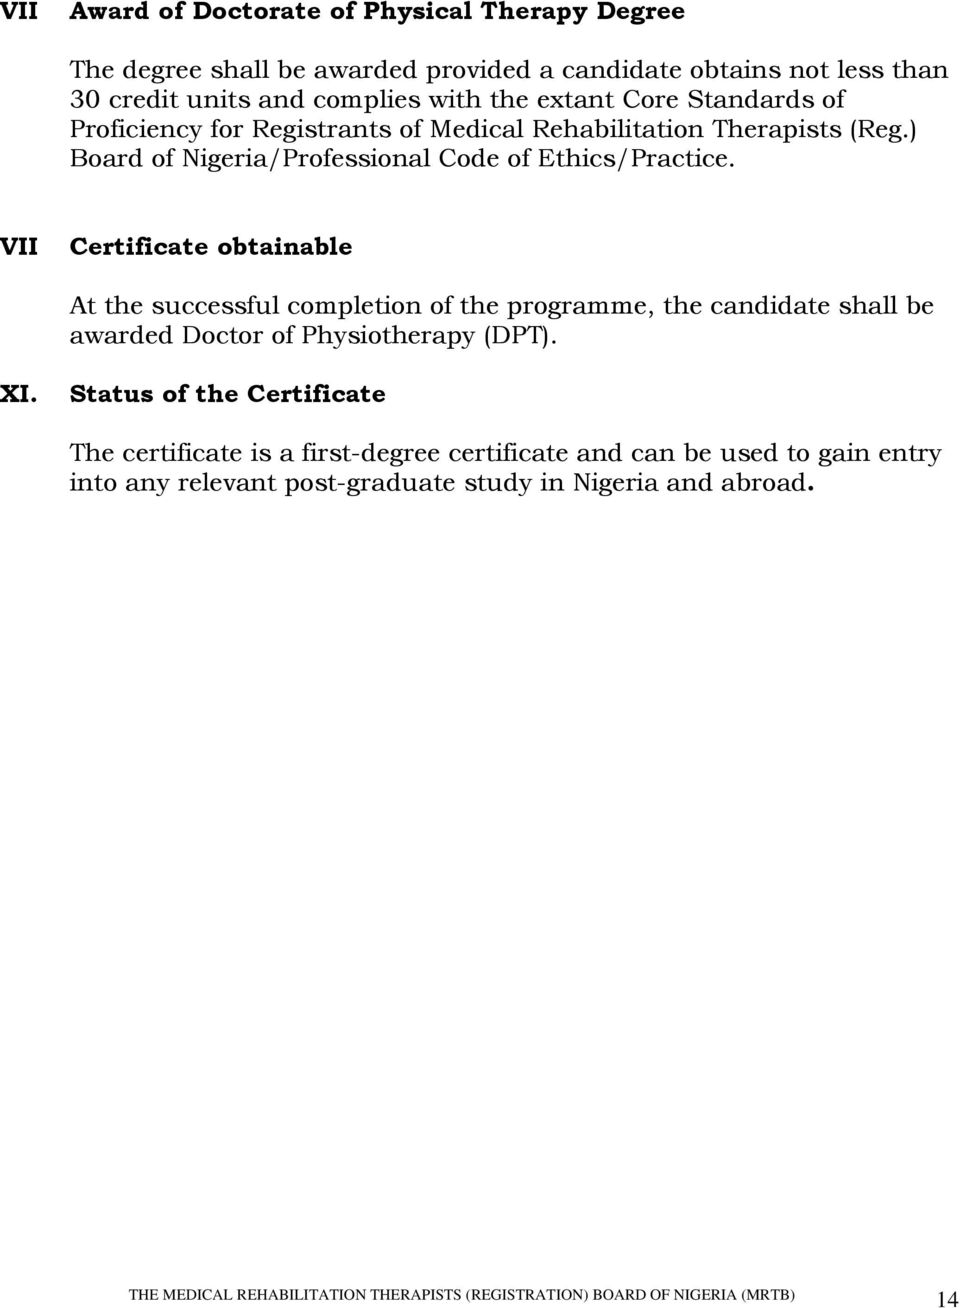 ) Board of Nigeria/Professional Code of Ethics/Practice.